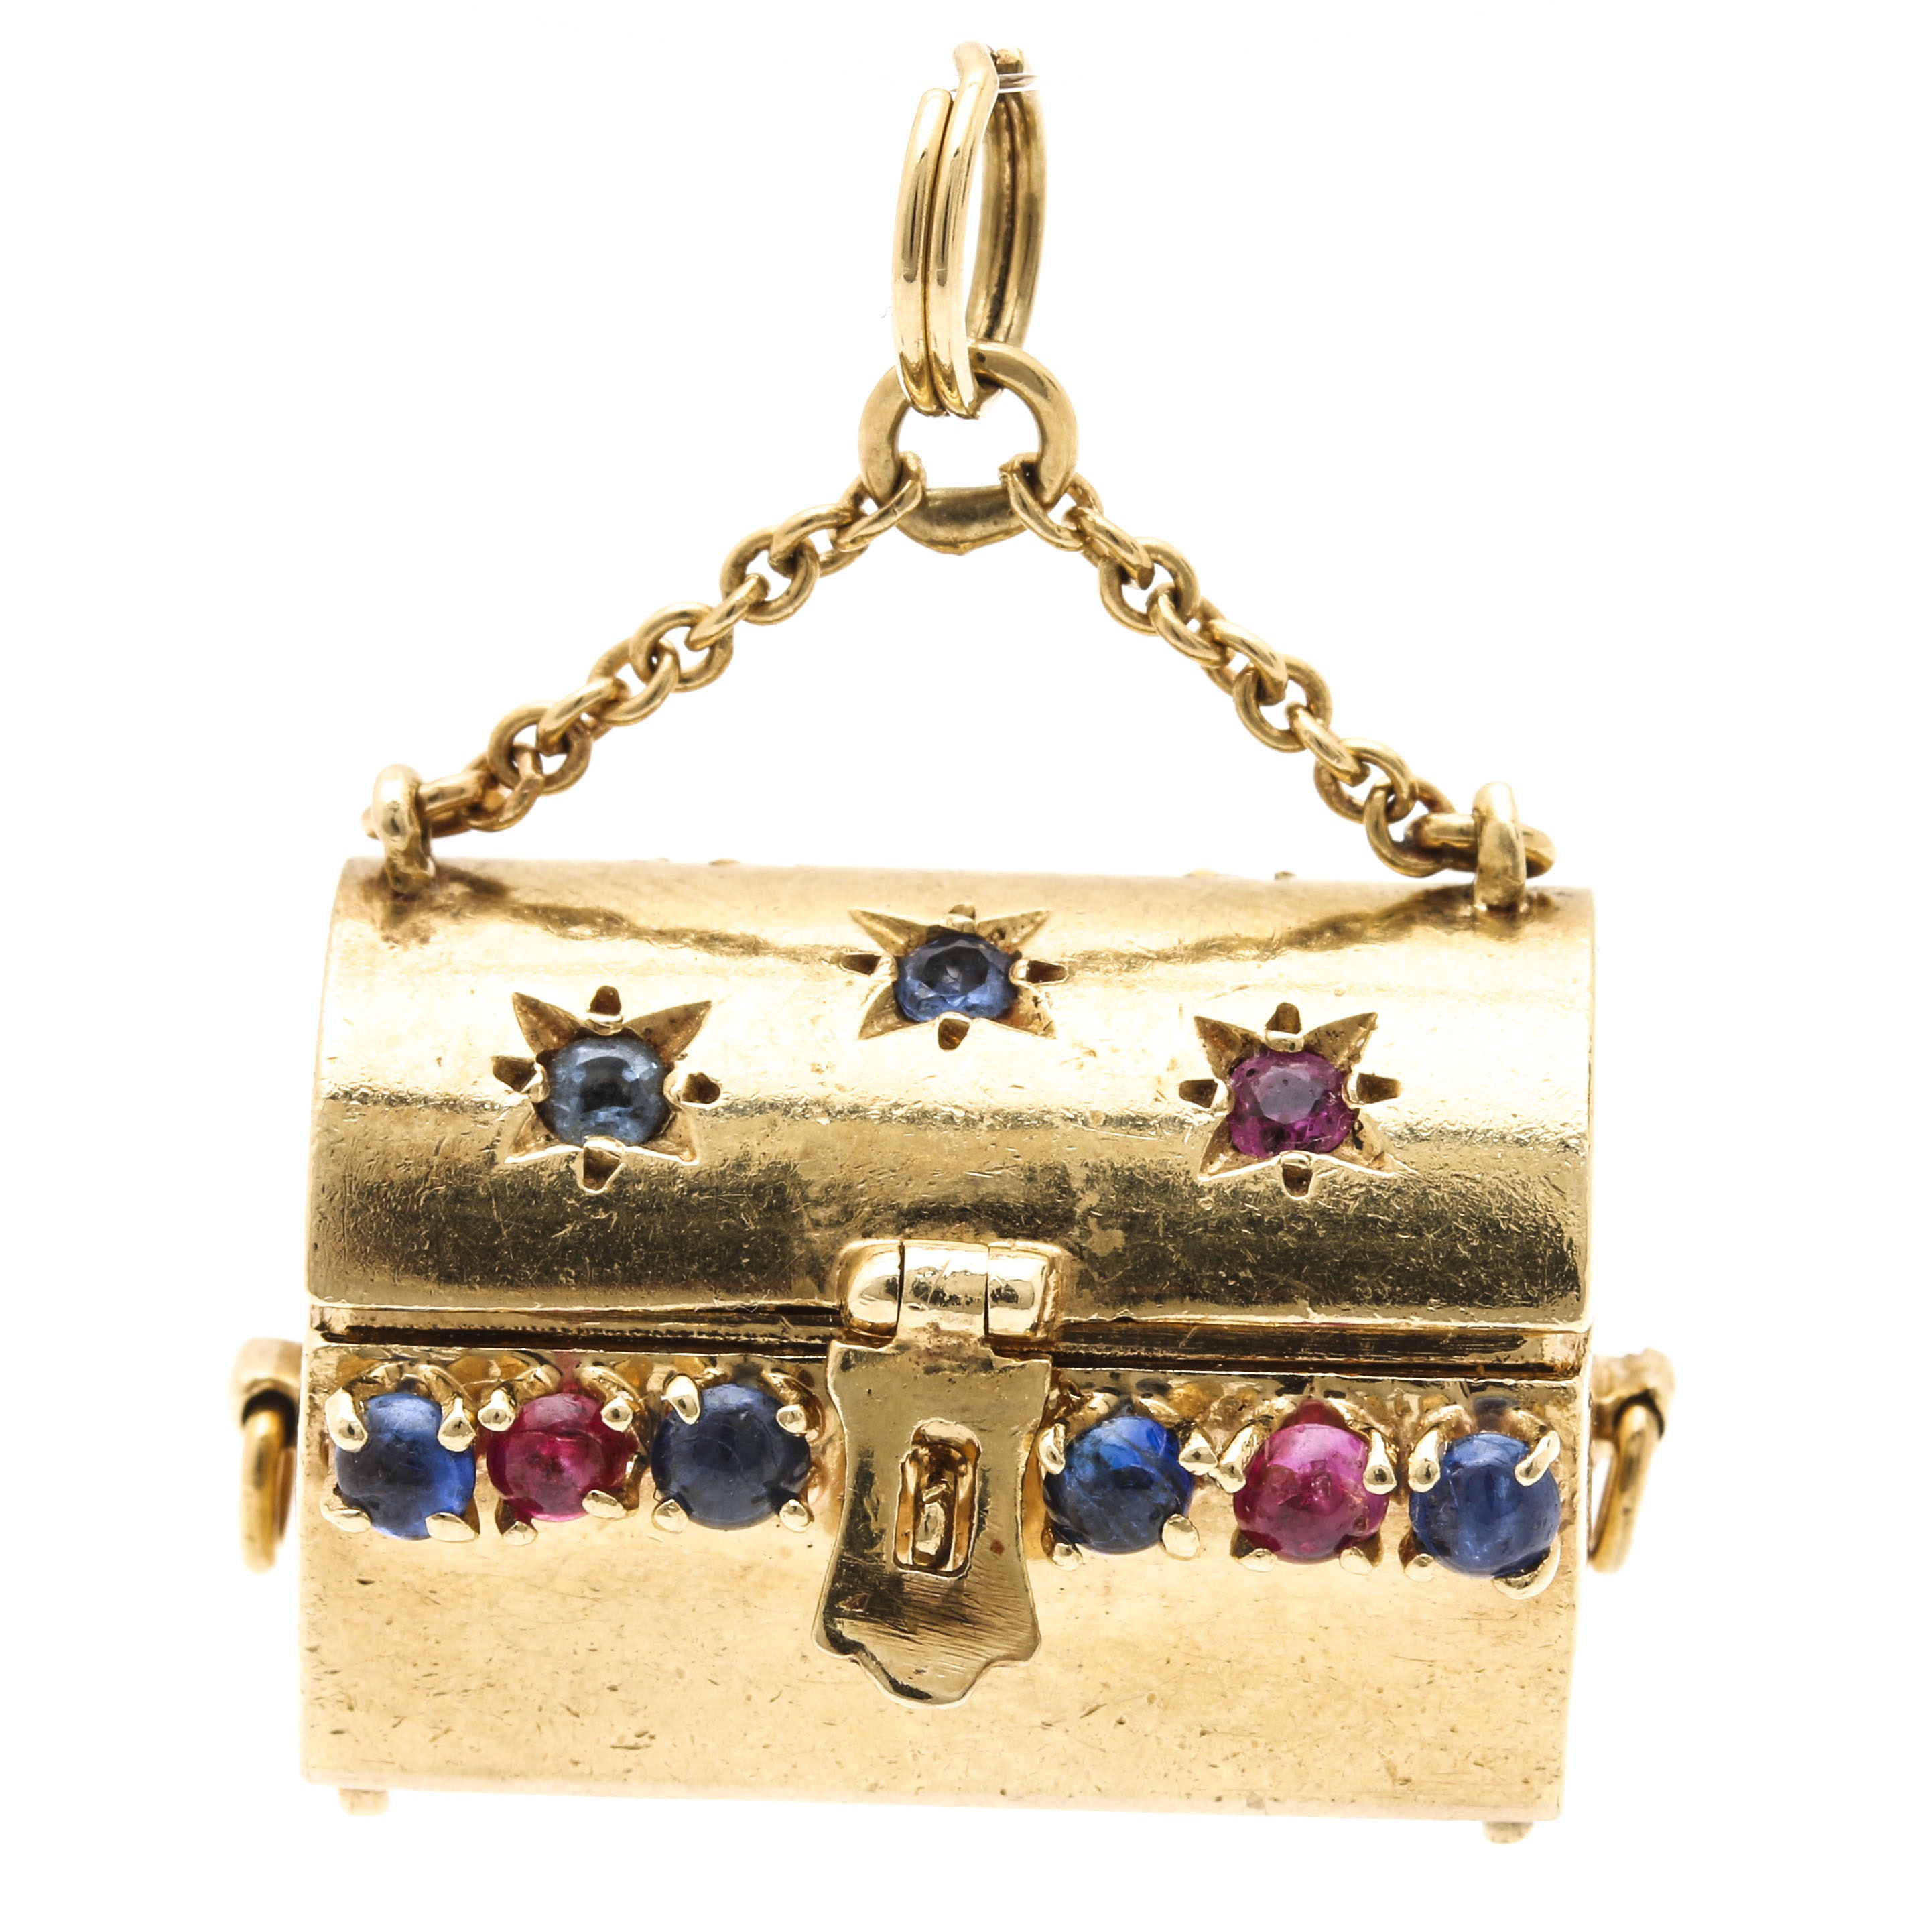 14K Yellow Gold and Multiple Gemstone Treasure Chest Pendant